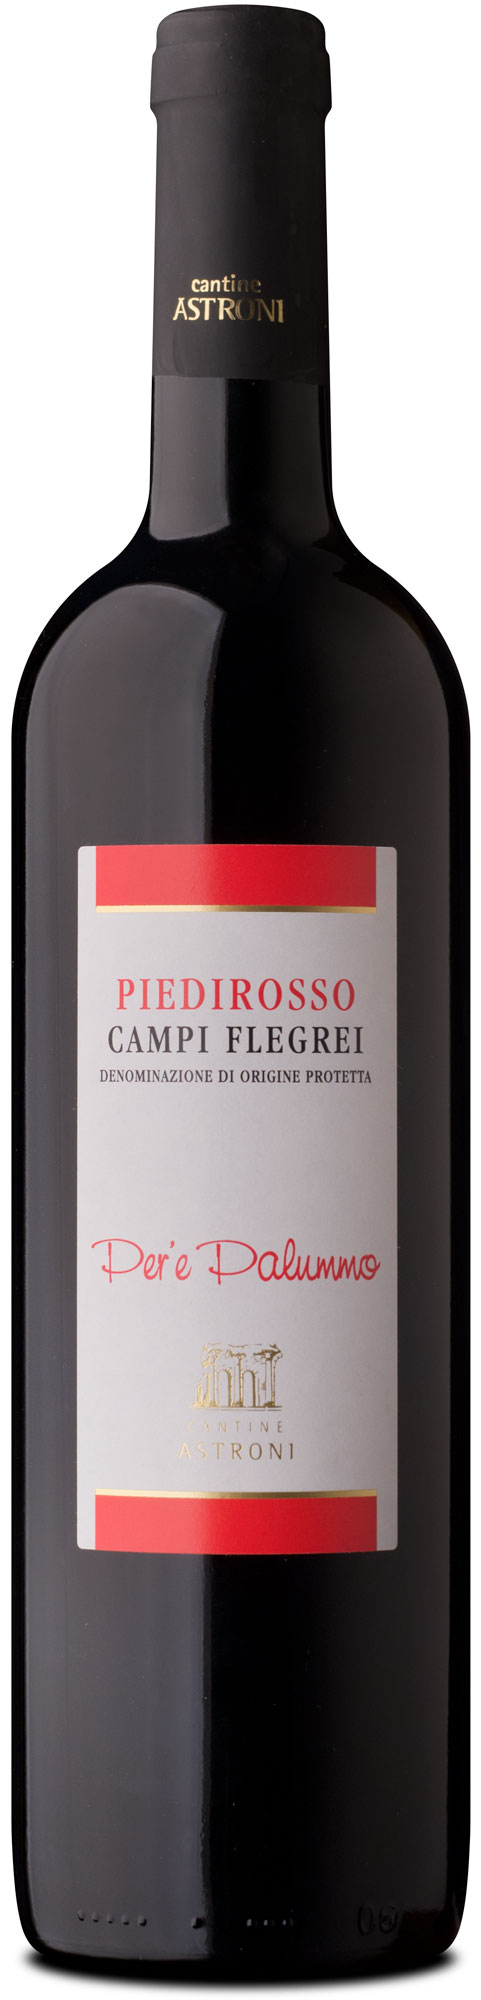 bottle of Piedirosso Campi Flegrei tradition line - Astroni